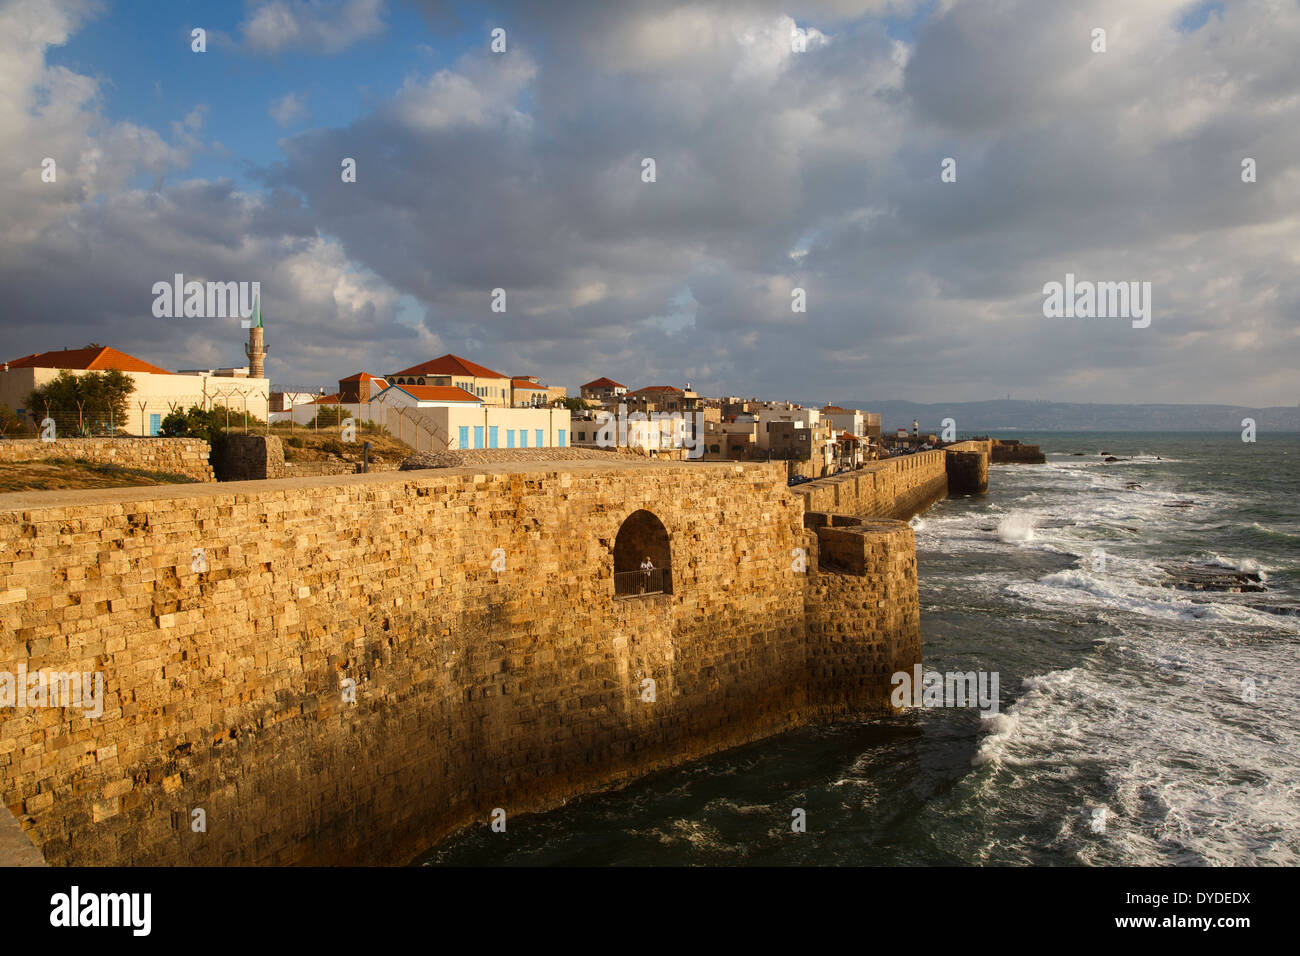 View of the old city walls, Akko (Acre), Israel. - Stock Image